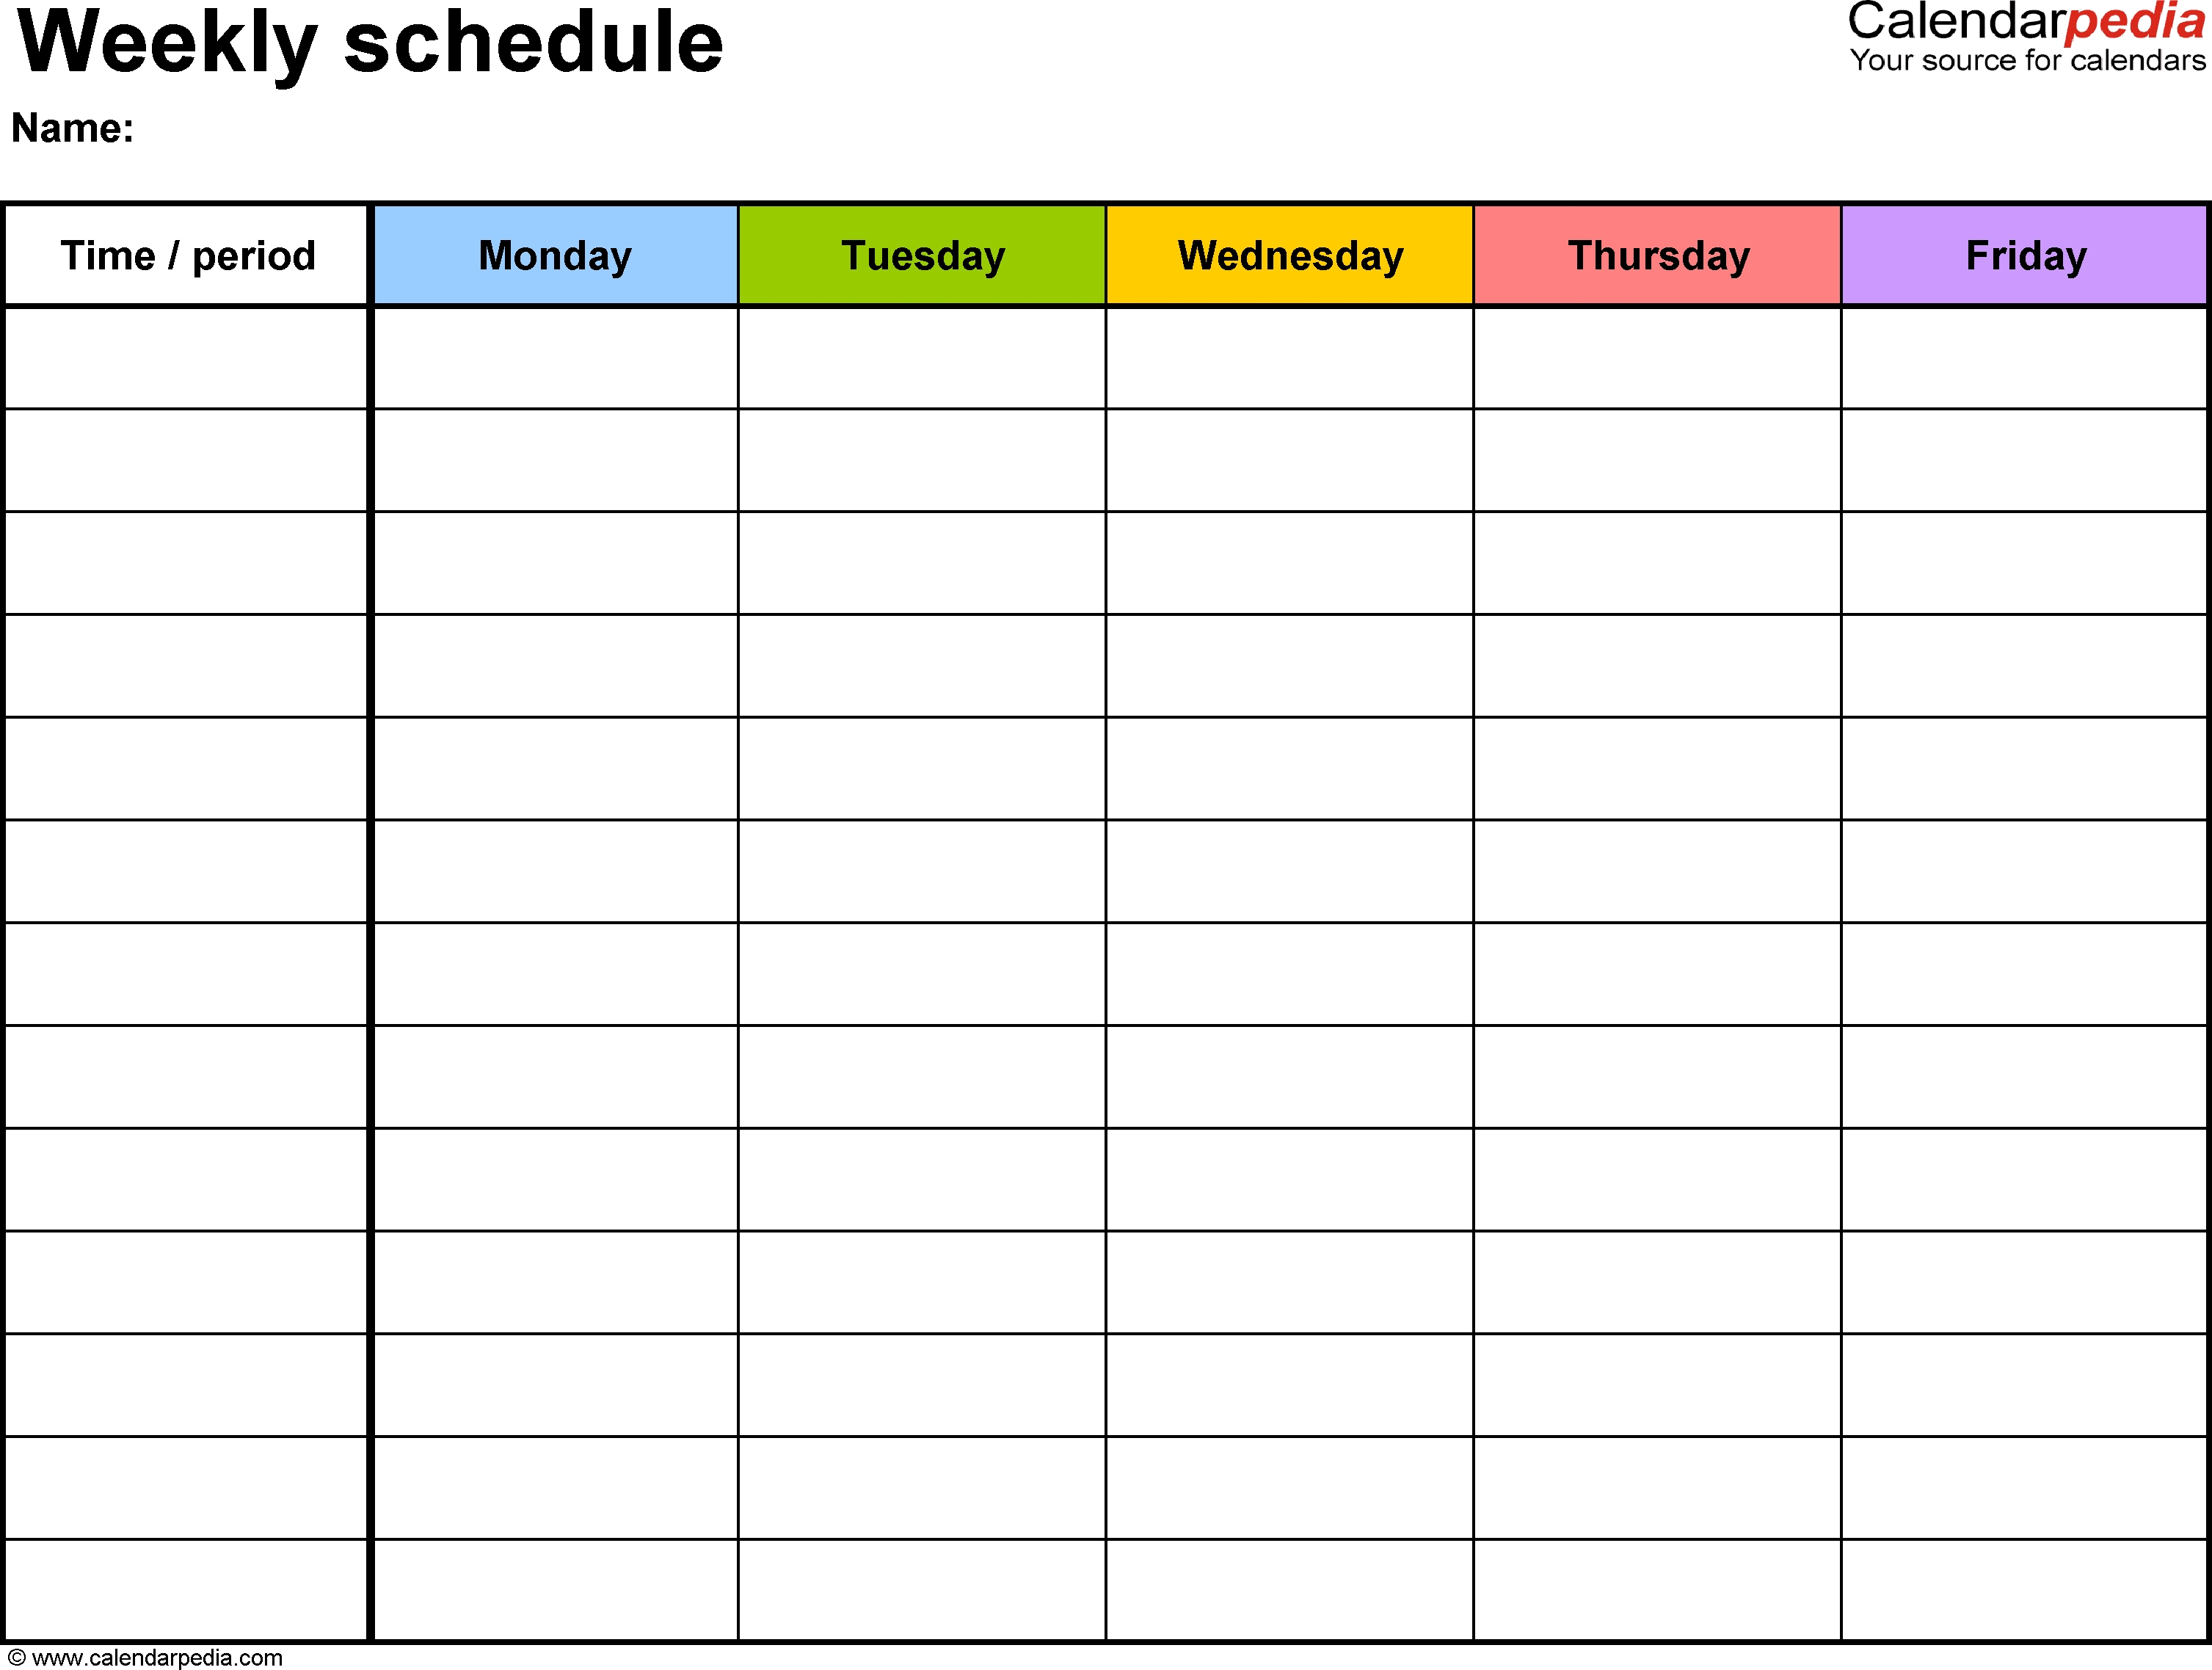 Free Weekly Schedule Templates For Word - 18 Templates regarding Calendar By Month Monday To Friday